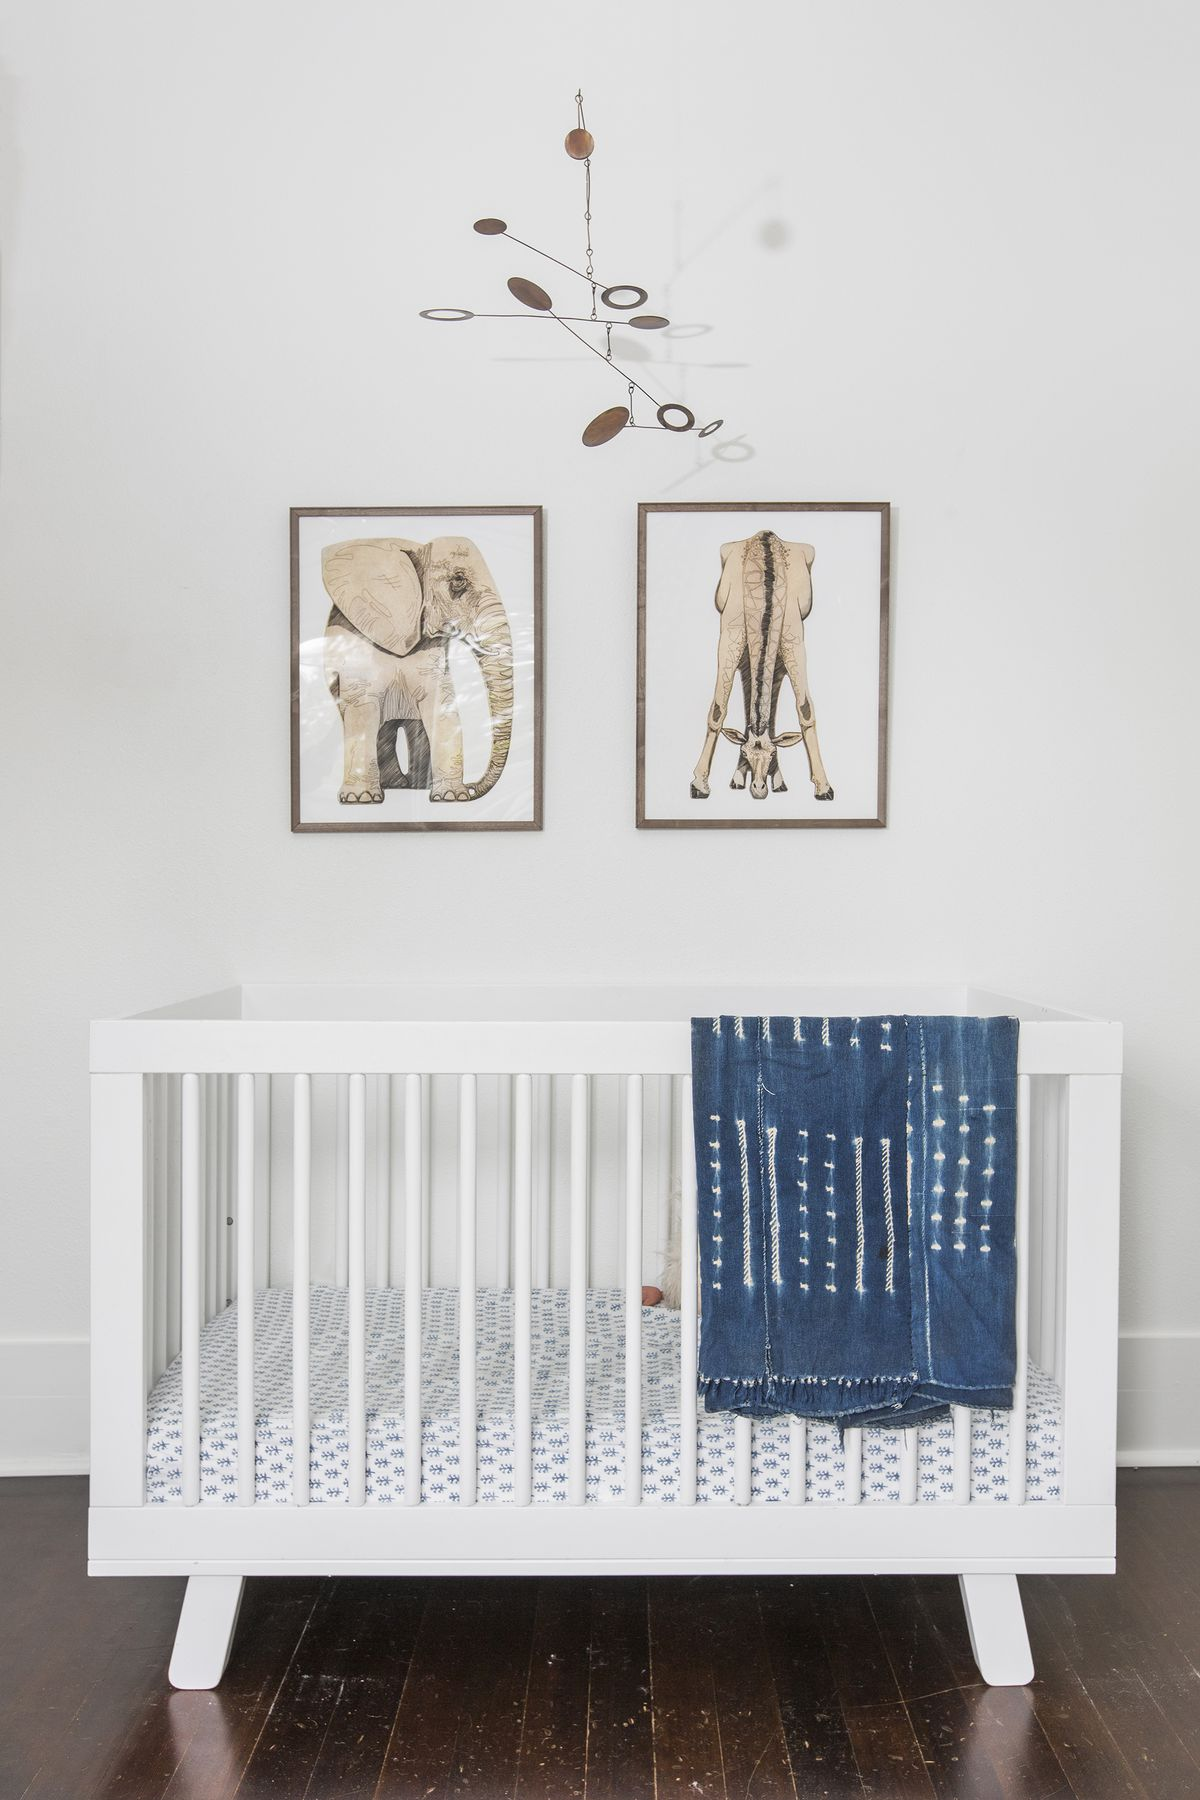 A white crib has a bronze mobile above it, as well as a print of an elephant and a giraffe.